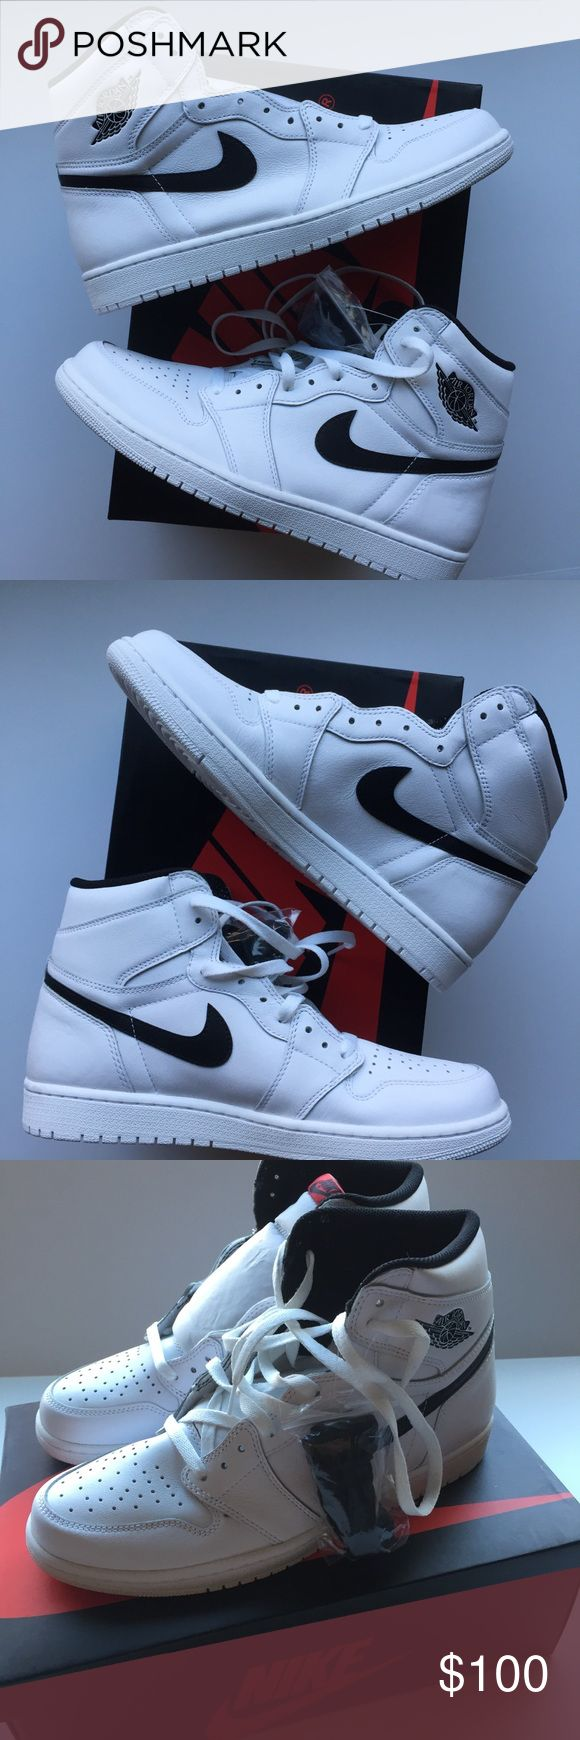 "NEW Nike Air Jordan 1 Retro High OG ""Yin Yang"" NEW Nike Air Jordan 1 Retro High OG ""Yin Yang"" White Black 555088-102 Mens 10.5.  New with box - 100% authentic, please see original purchase receipt.  Very minor in-store try-on dust wear on left sole - see photo. Nike Shoes Sneakers"